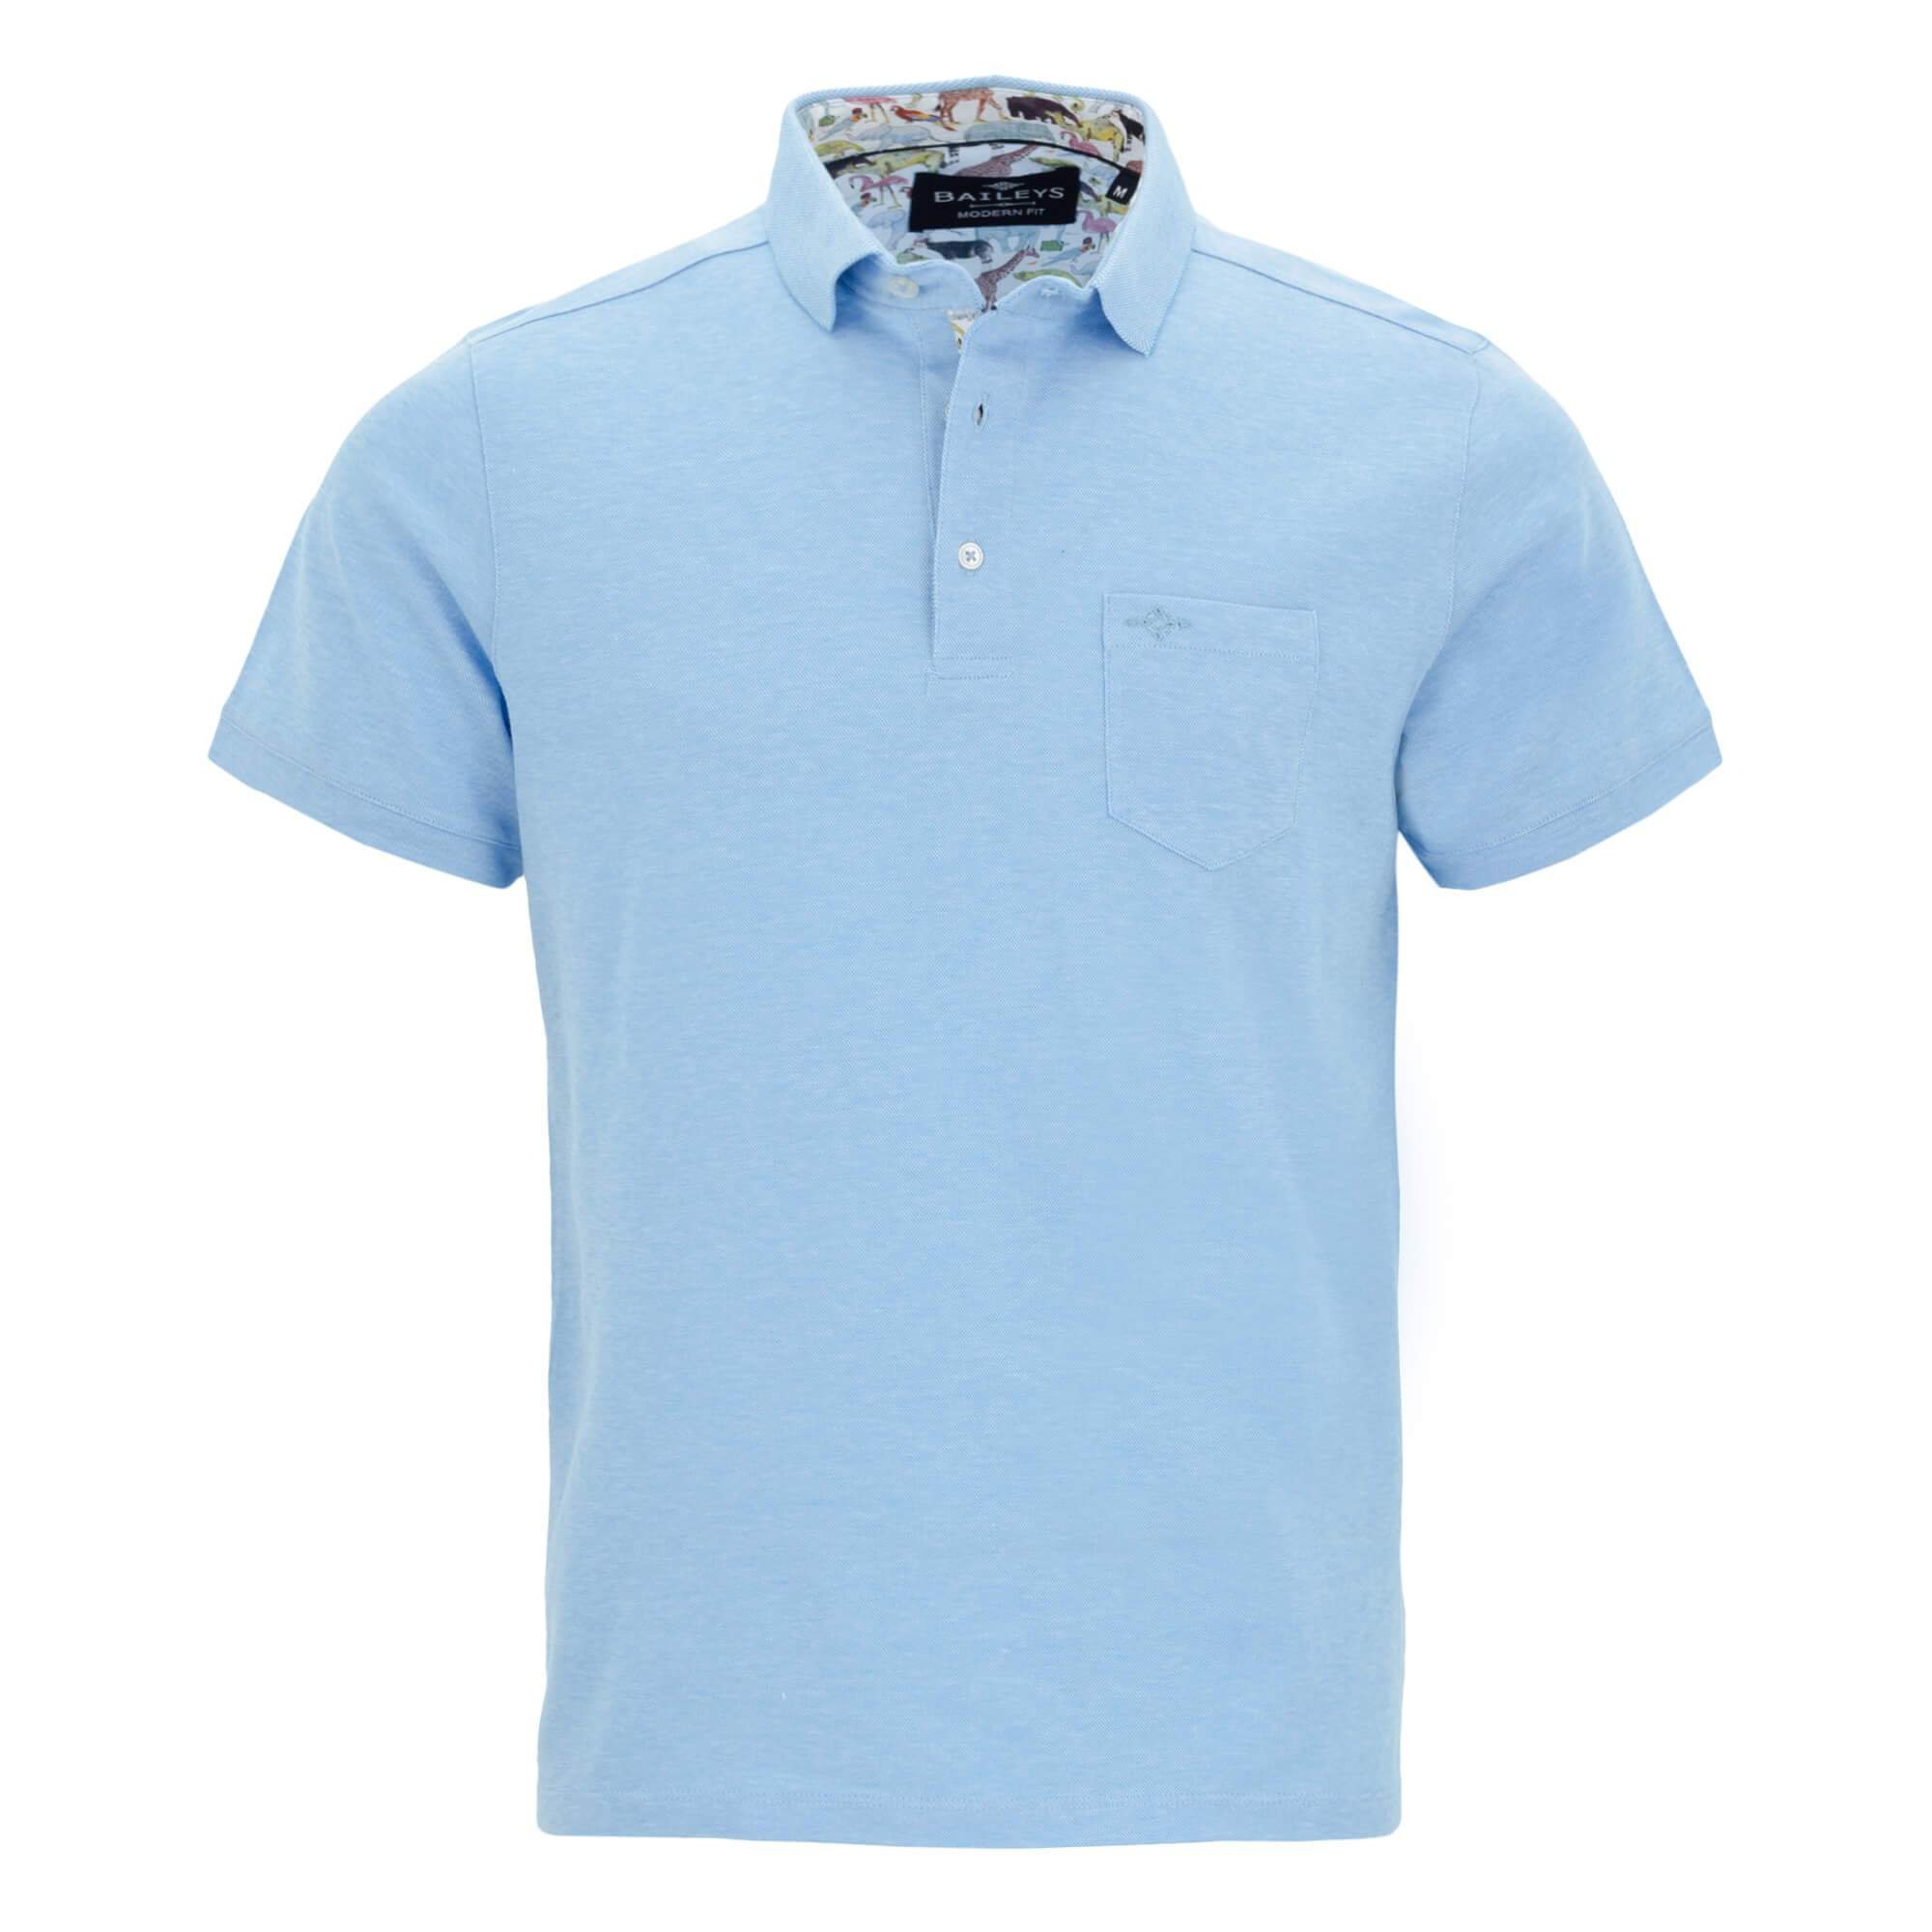 Polo jaspeado slim fit 916899